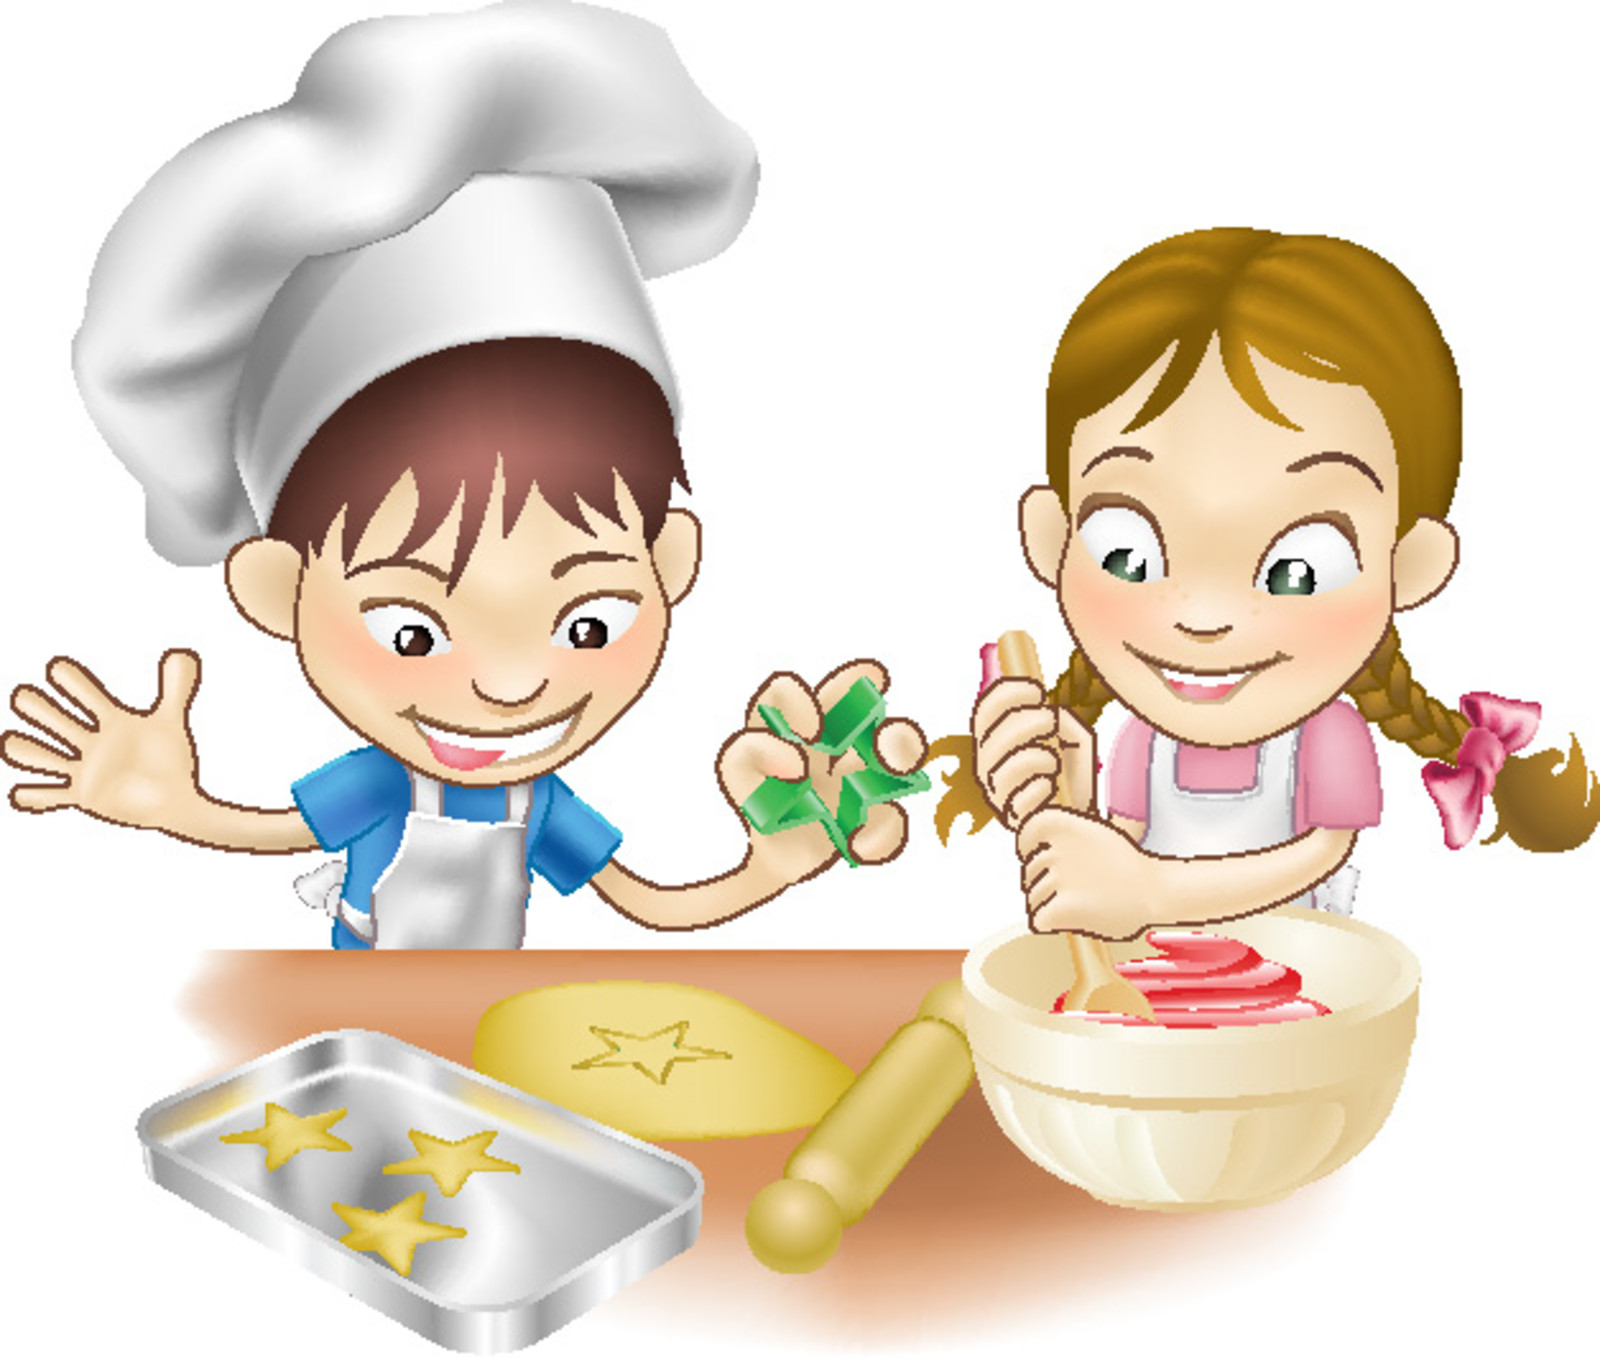 Baking clipart boy. Cooking with kids download